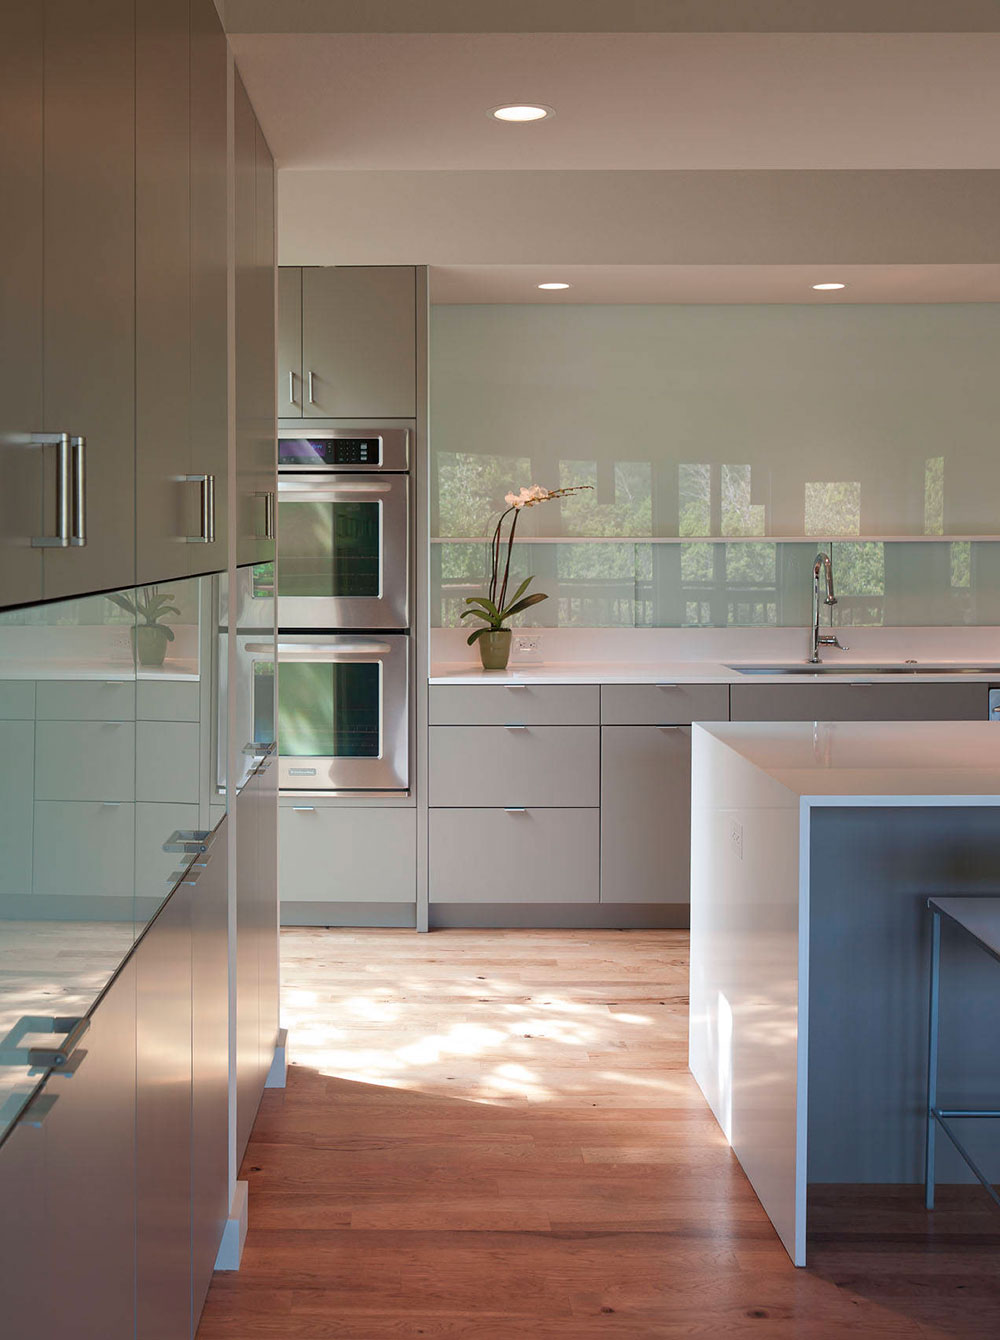 Foxtree Cove Webber Studio Architects Modern interior design styles